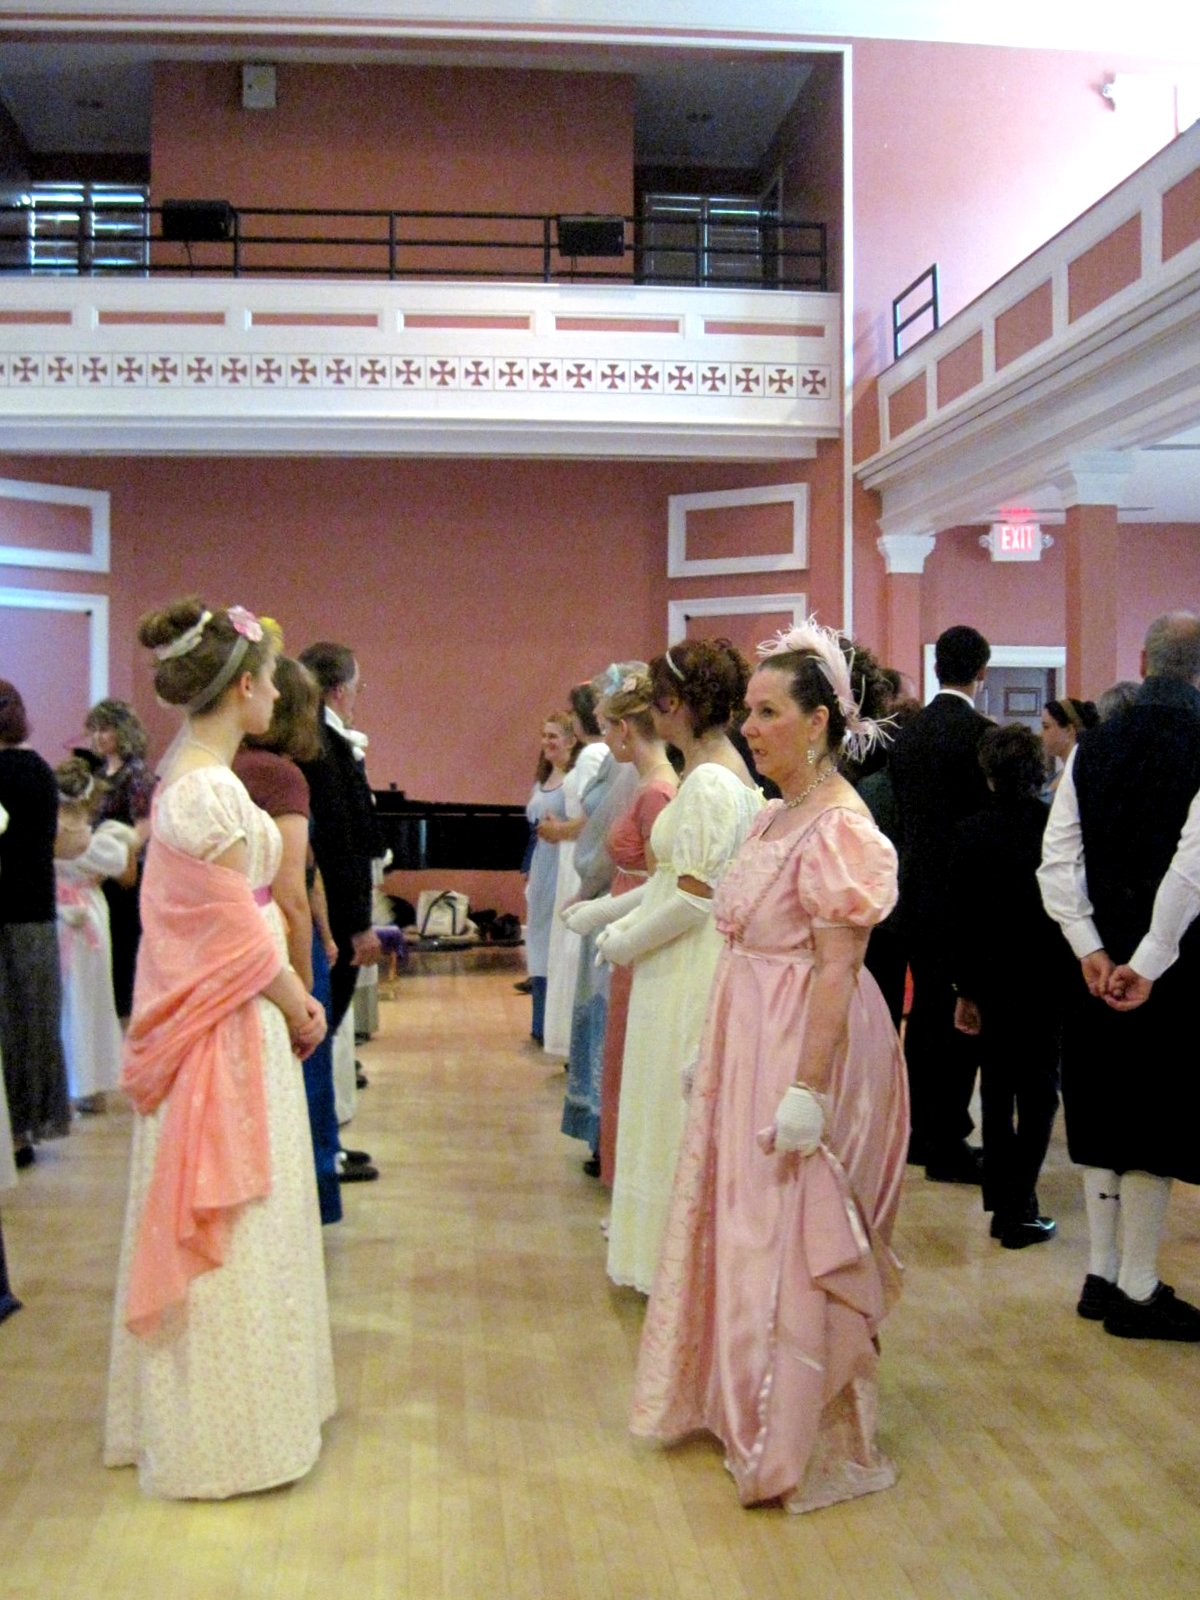 sense and sensibility jane austen in vermont the sense and sensibility ball at gerrard hall unc